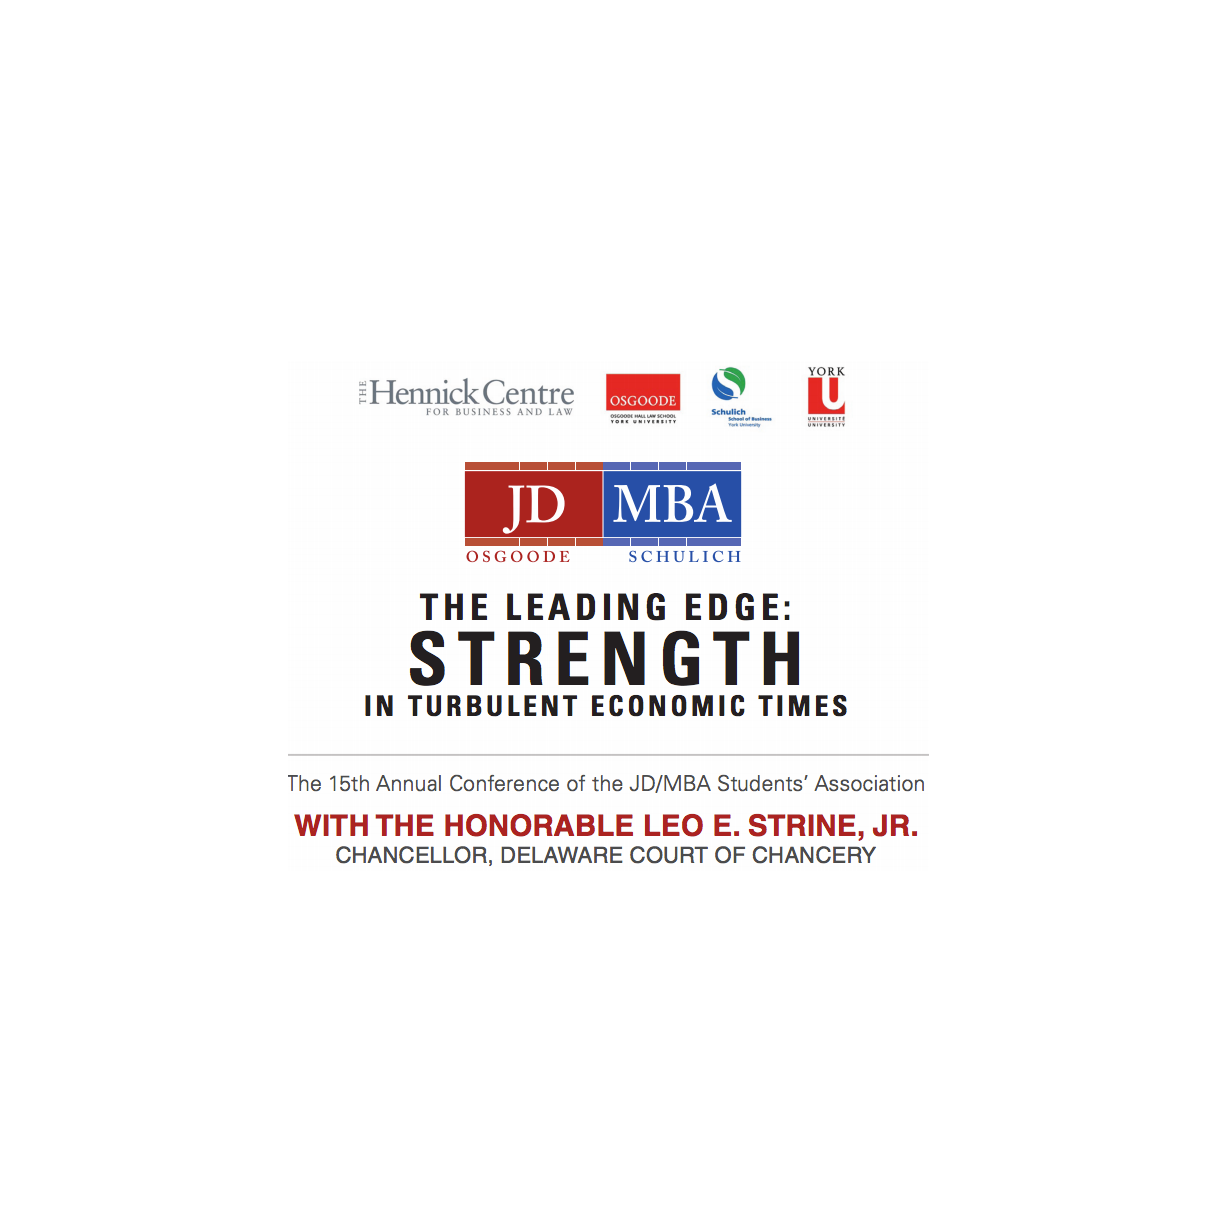 2015 JD MBA Conference Poster